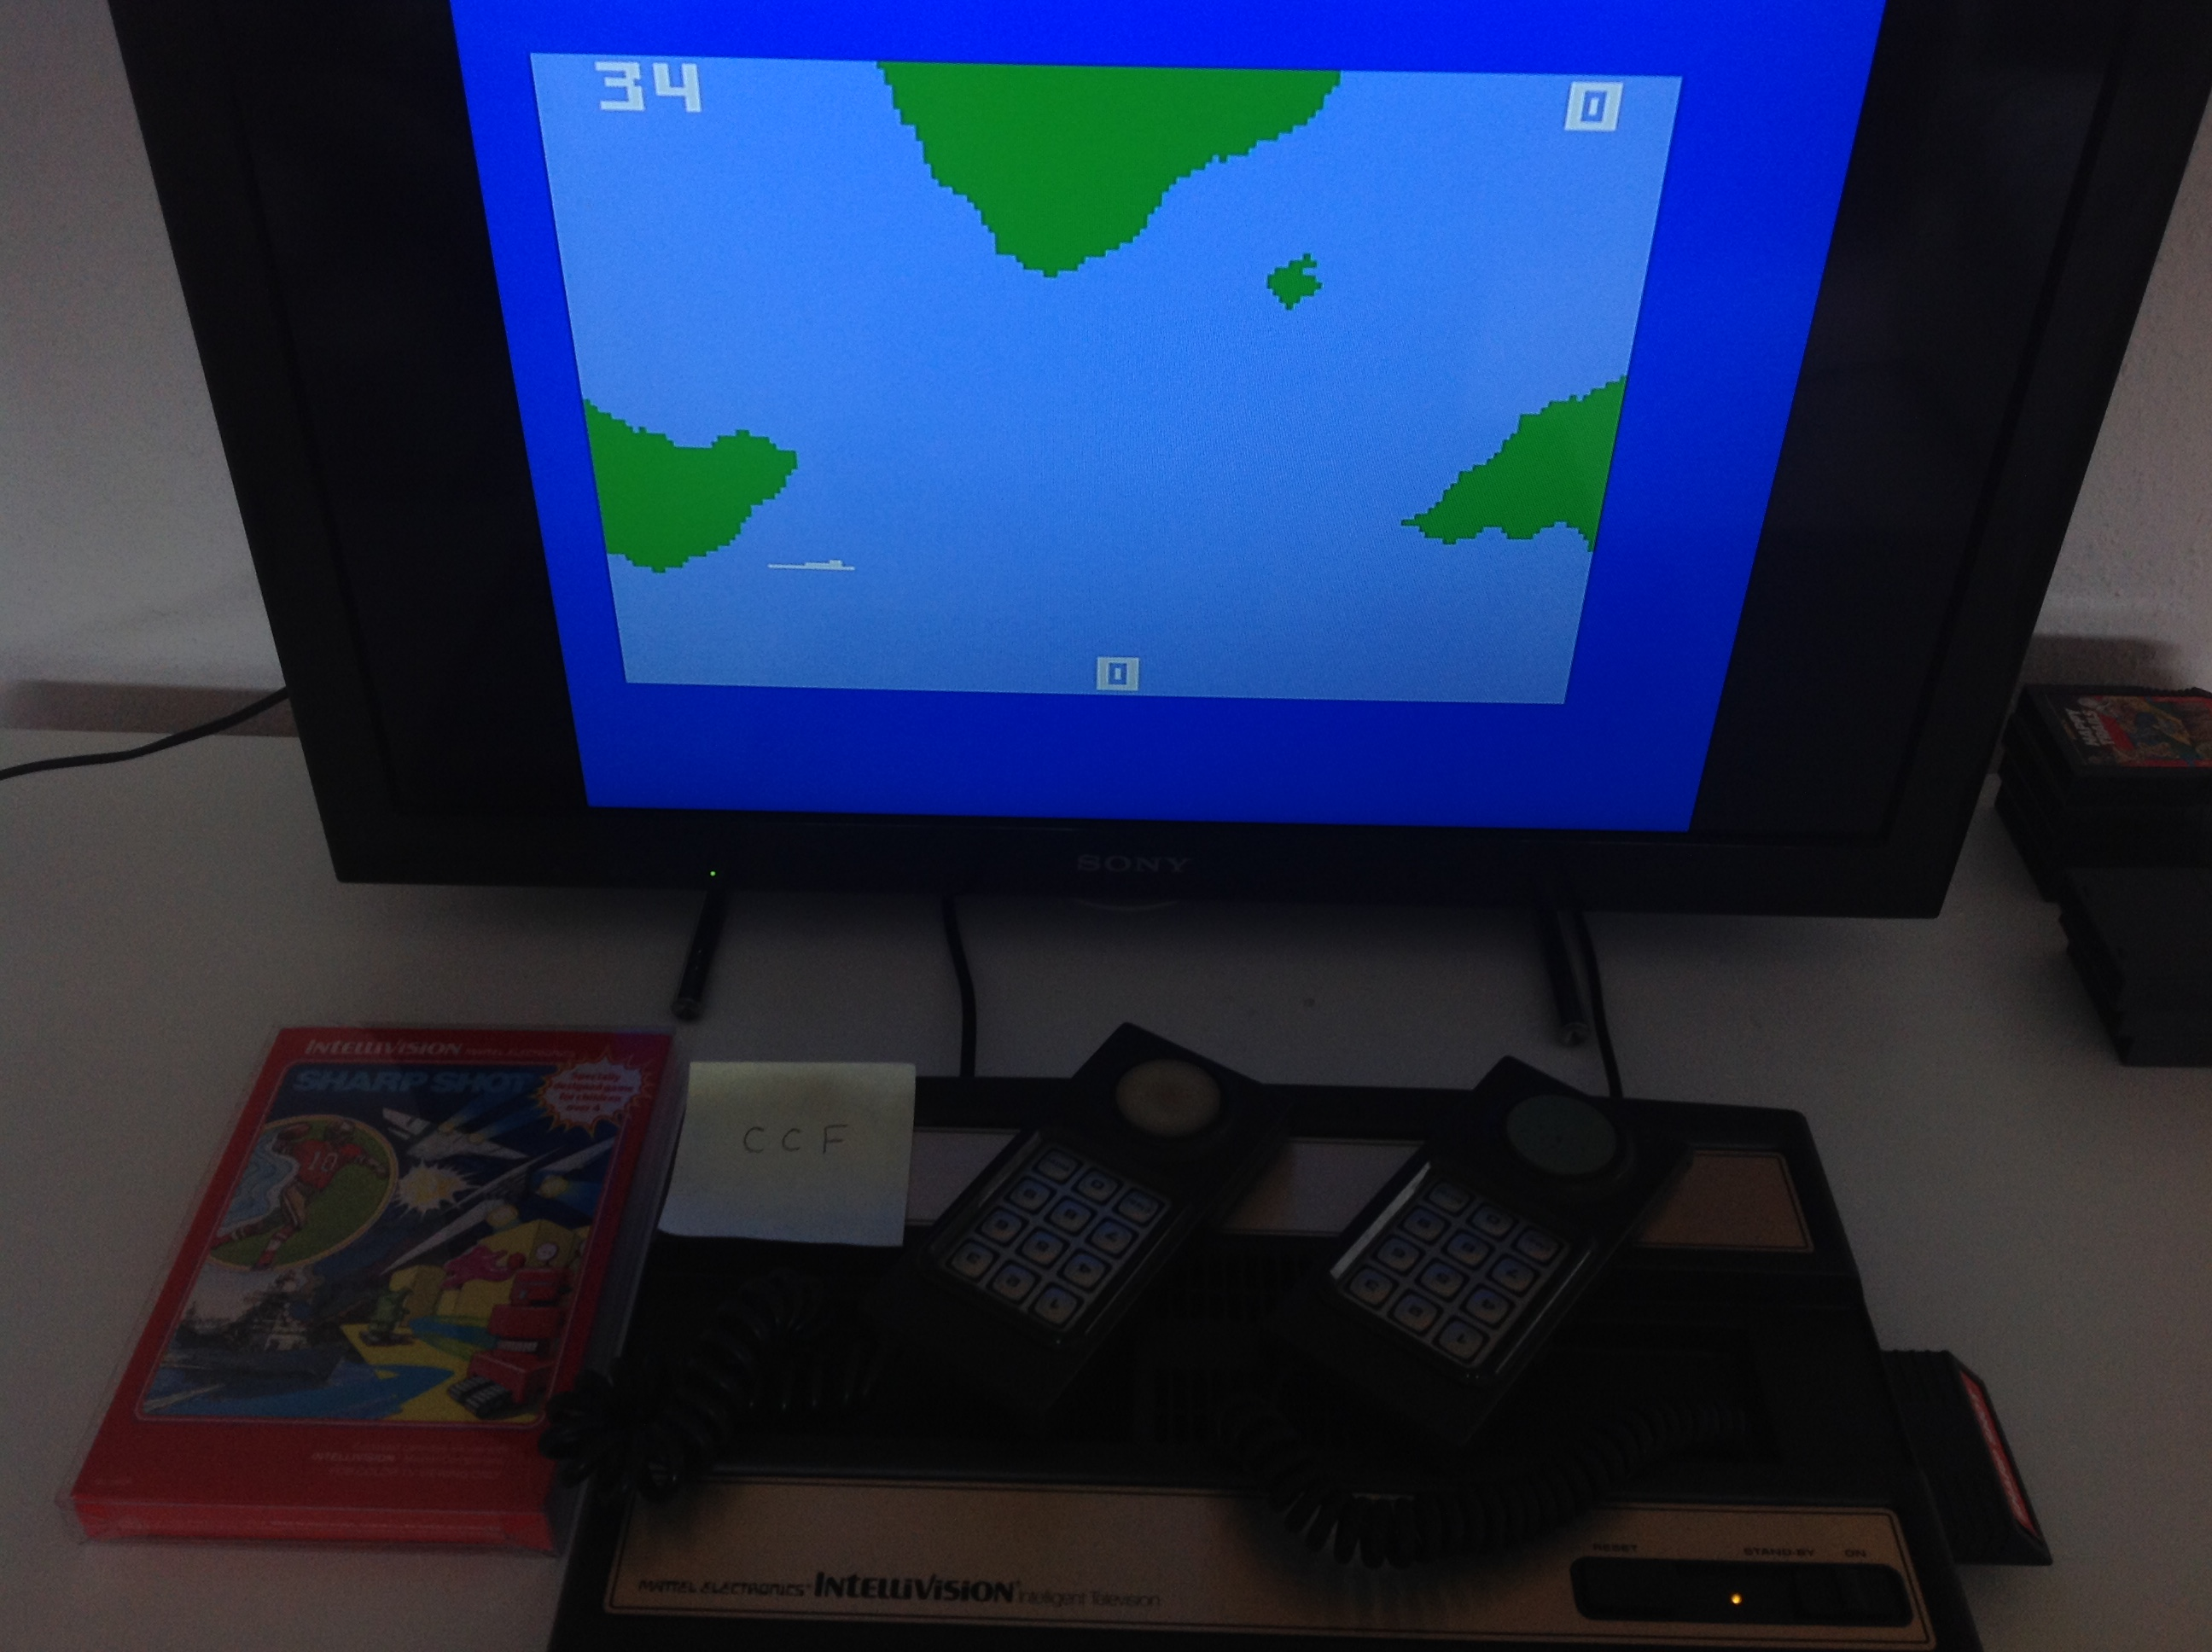 CoCoForest: Sharp Shot: Submarine (Intellivision) 34 points on 2018-08-20 09:09:30